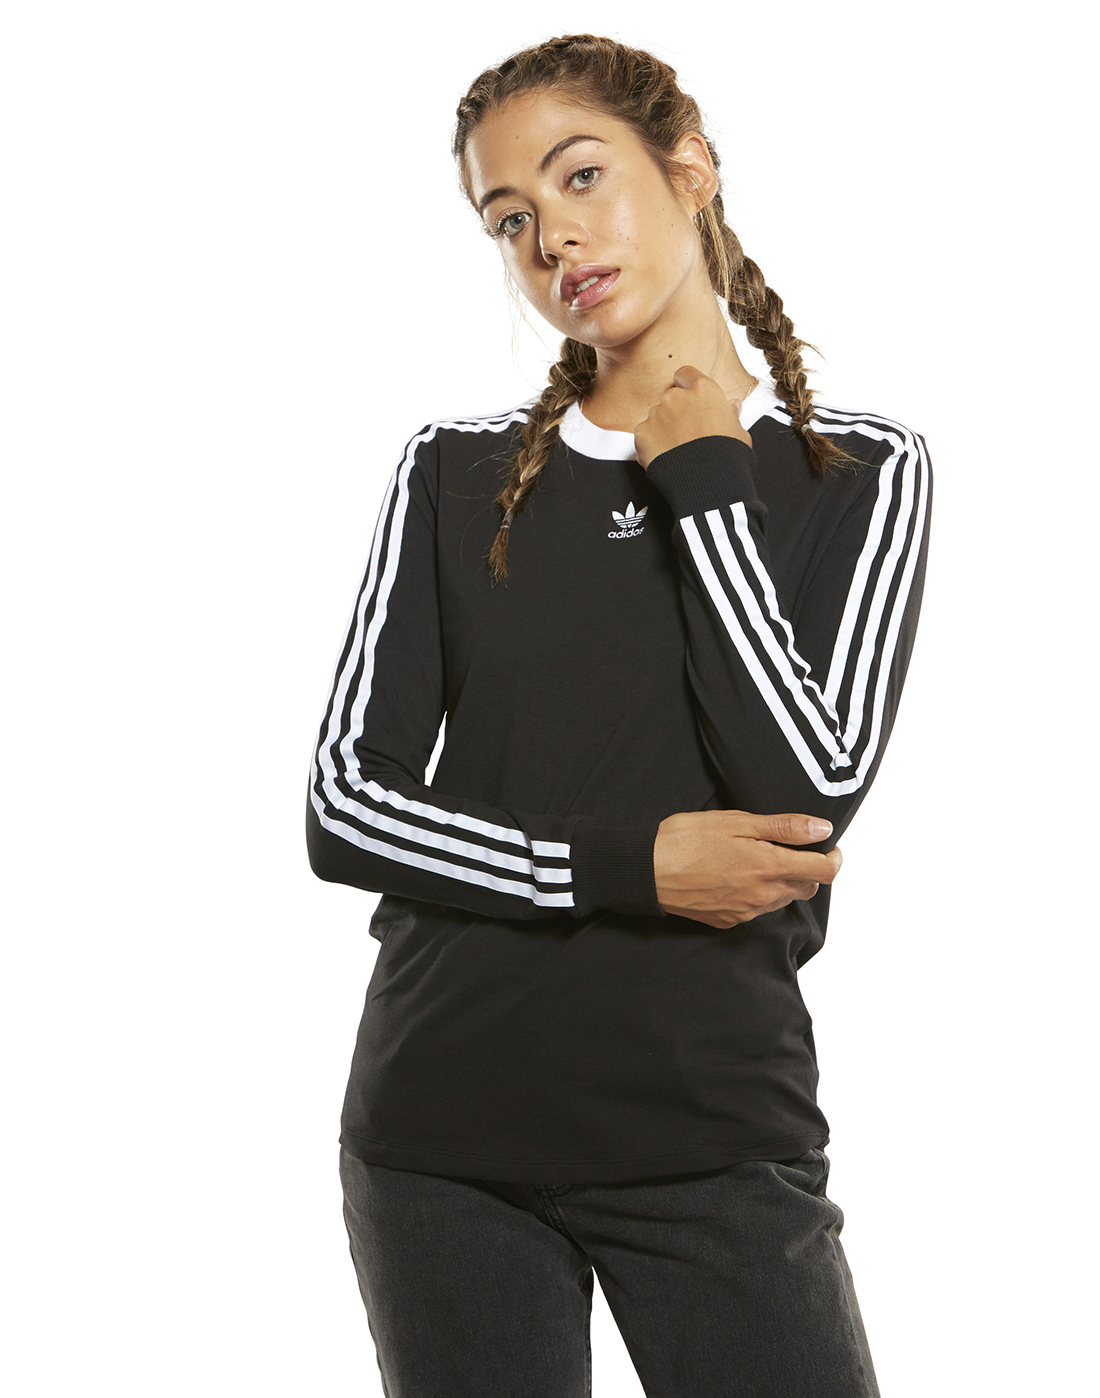 70f7530f433 adidas Originals Womens 3-Stripes Long Sleeve T-Shirt